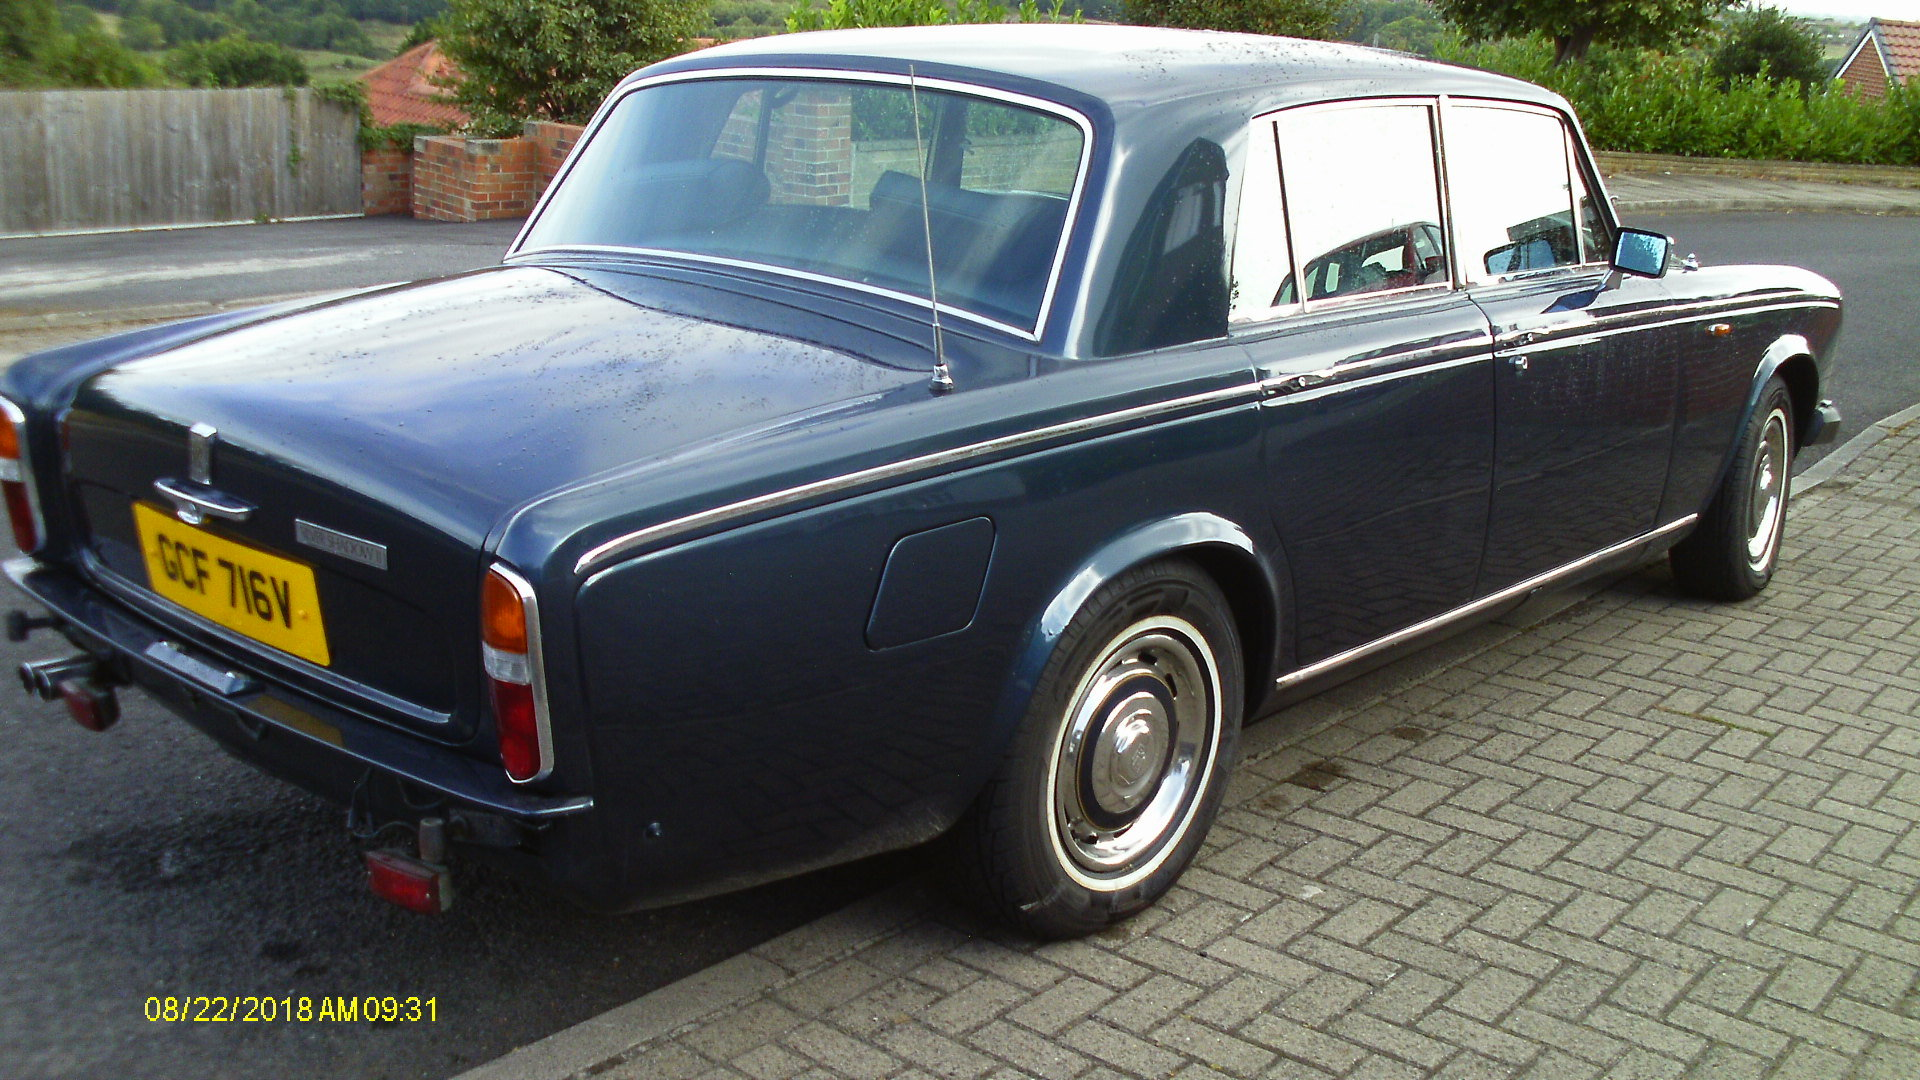 1979 rolls royce shadow 2  may p/x  why For Sale (picture 2 of 6)